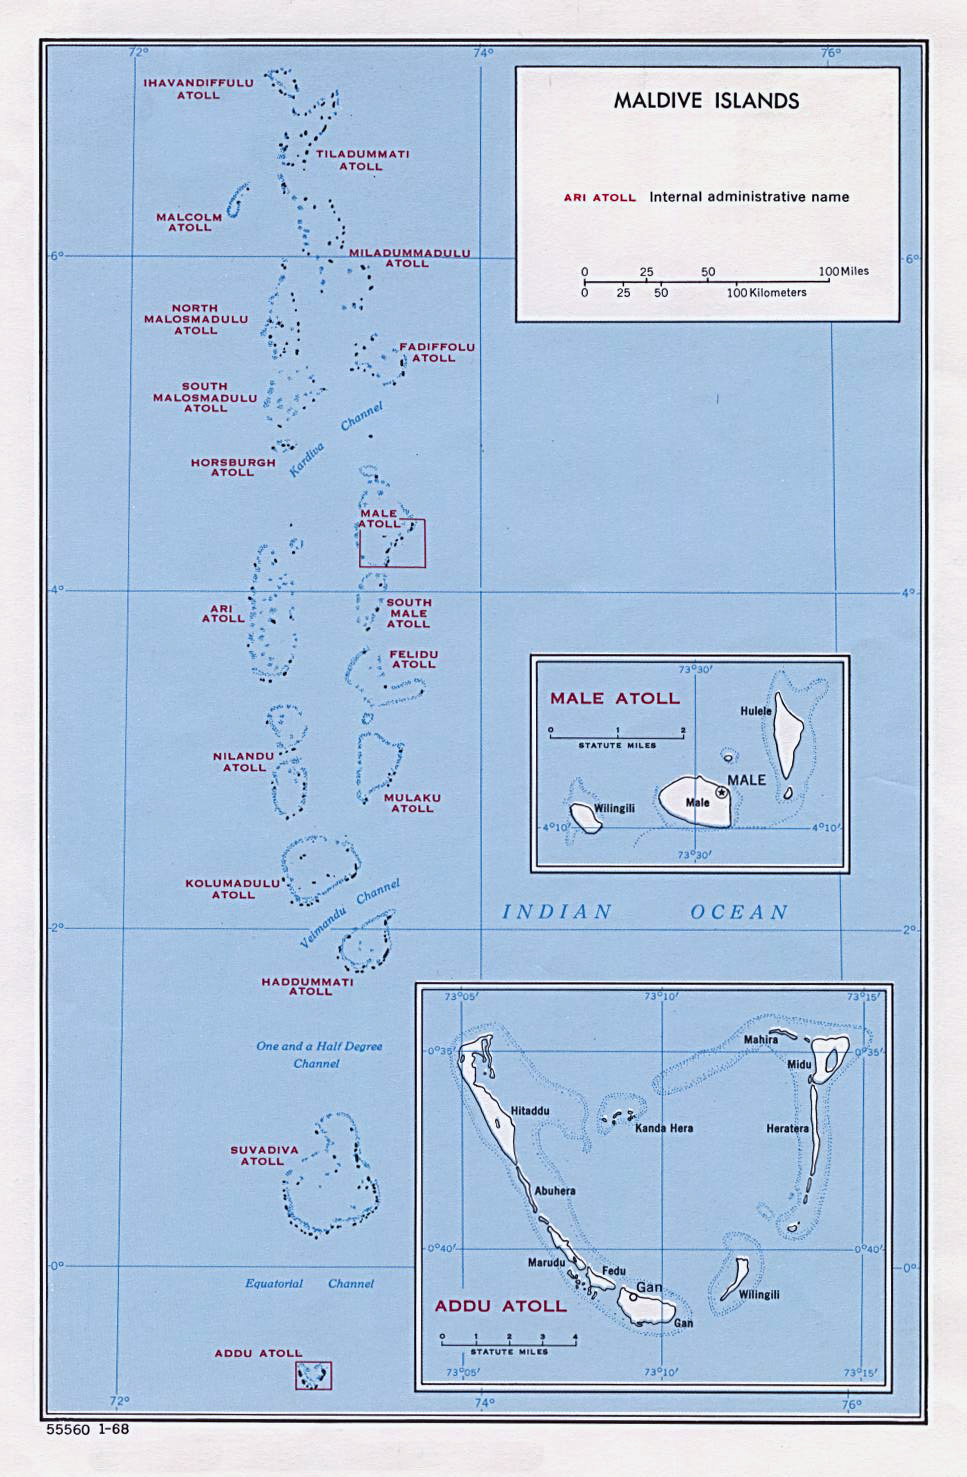 Maps Of Maldives Map Library Maps Of The World - Political map of maldives